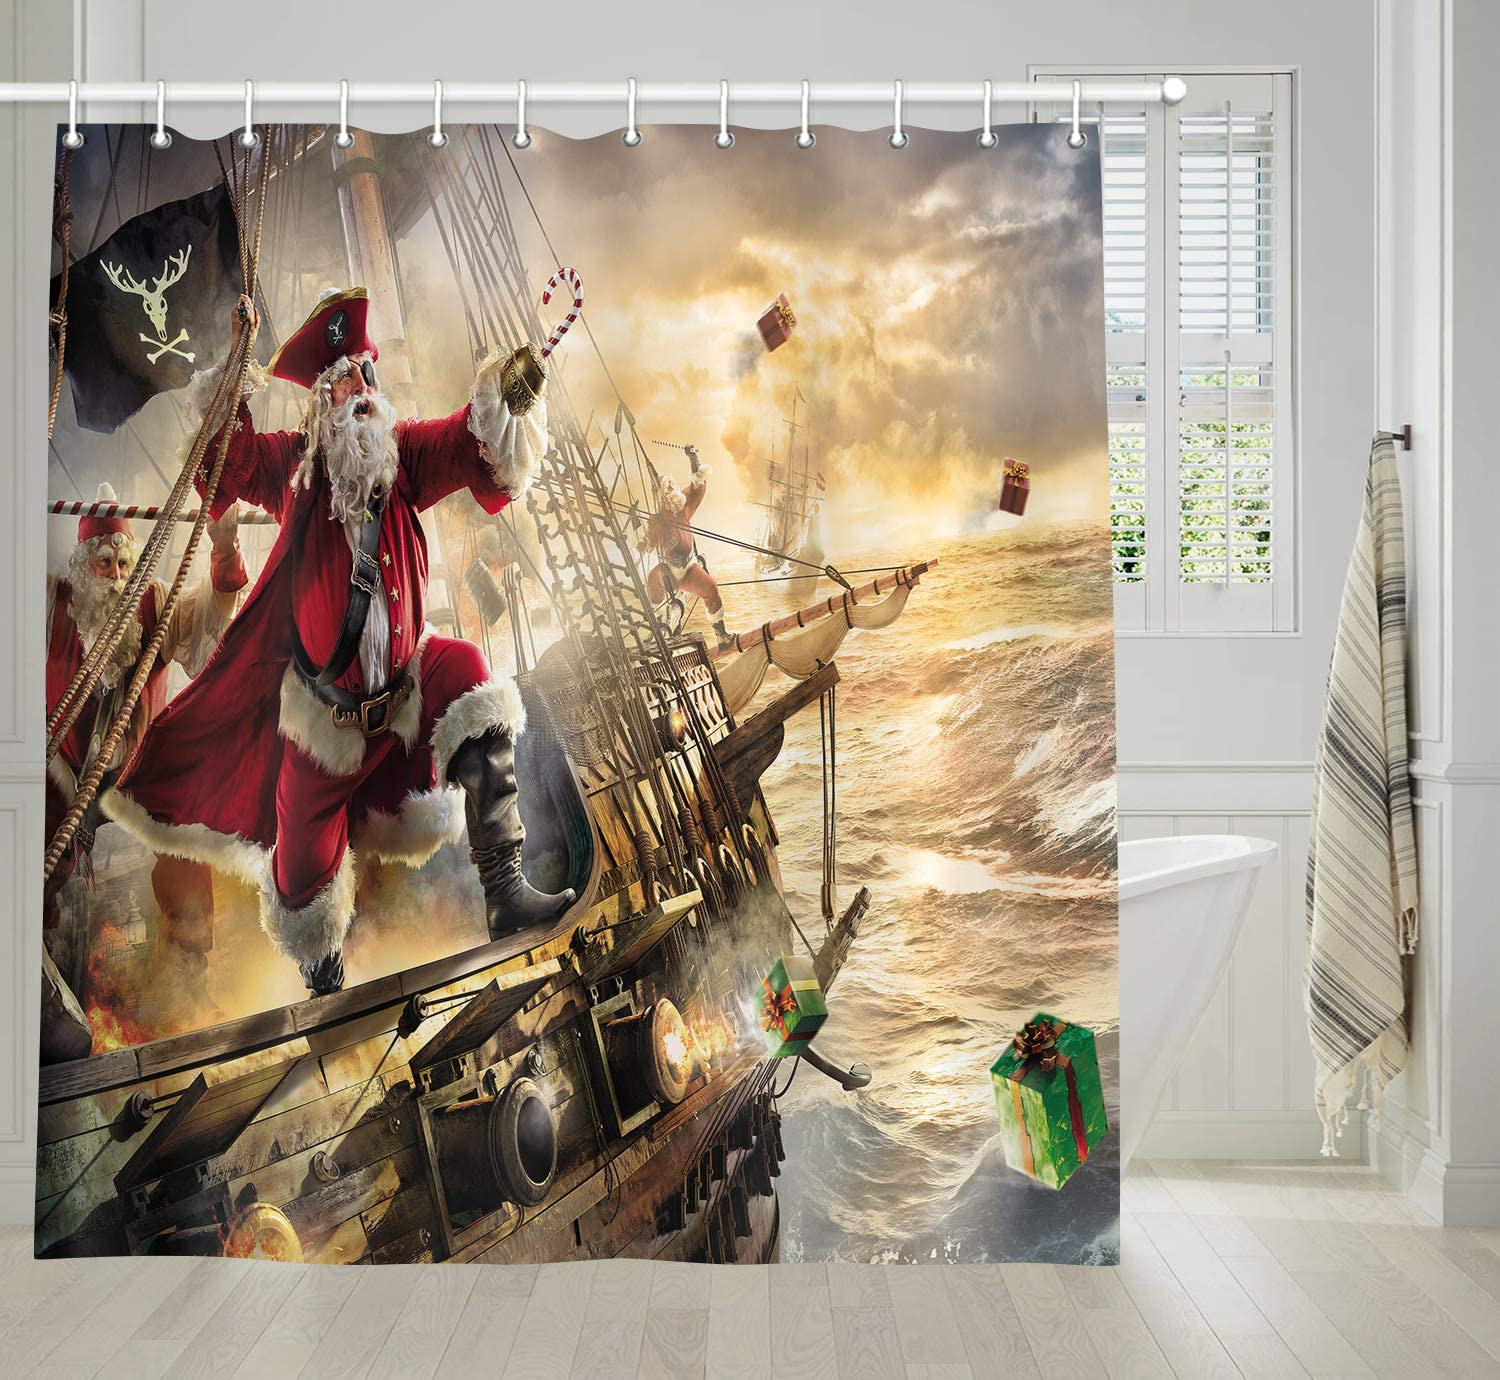 NYMB Funny Christmas Decor Shower Curtain, Cool Xmas Santa Claus on Nautical Pirate Ship on Ocean Tapestries, Festival Holiday Bath Curtain, Fabric Bathroom Decor Set with Shower Hooks, 69X70 Inches